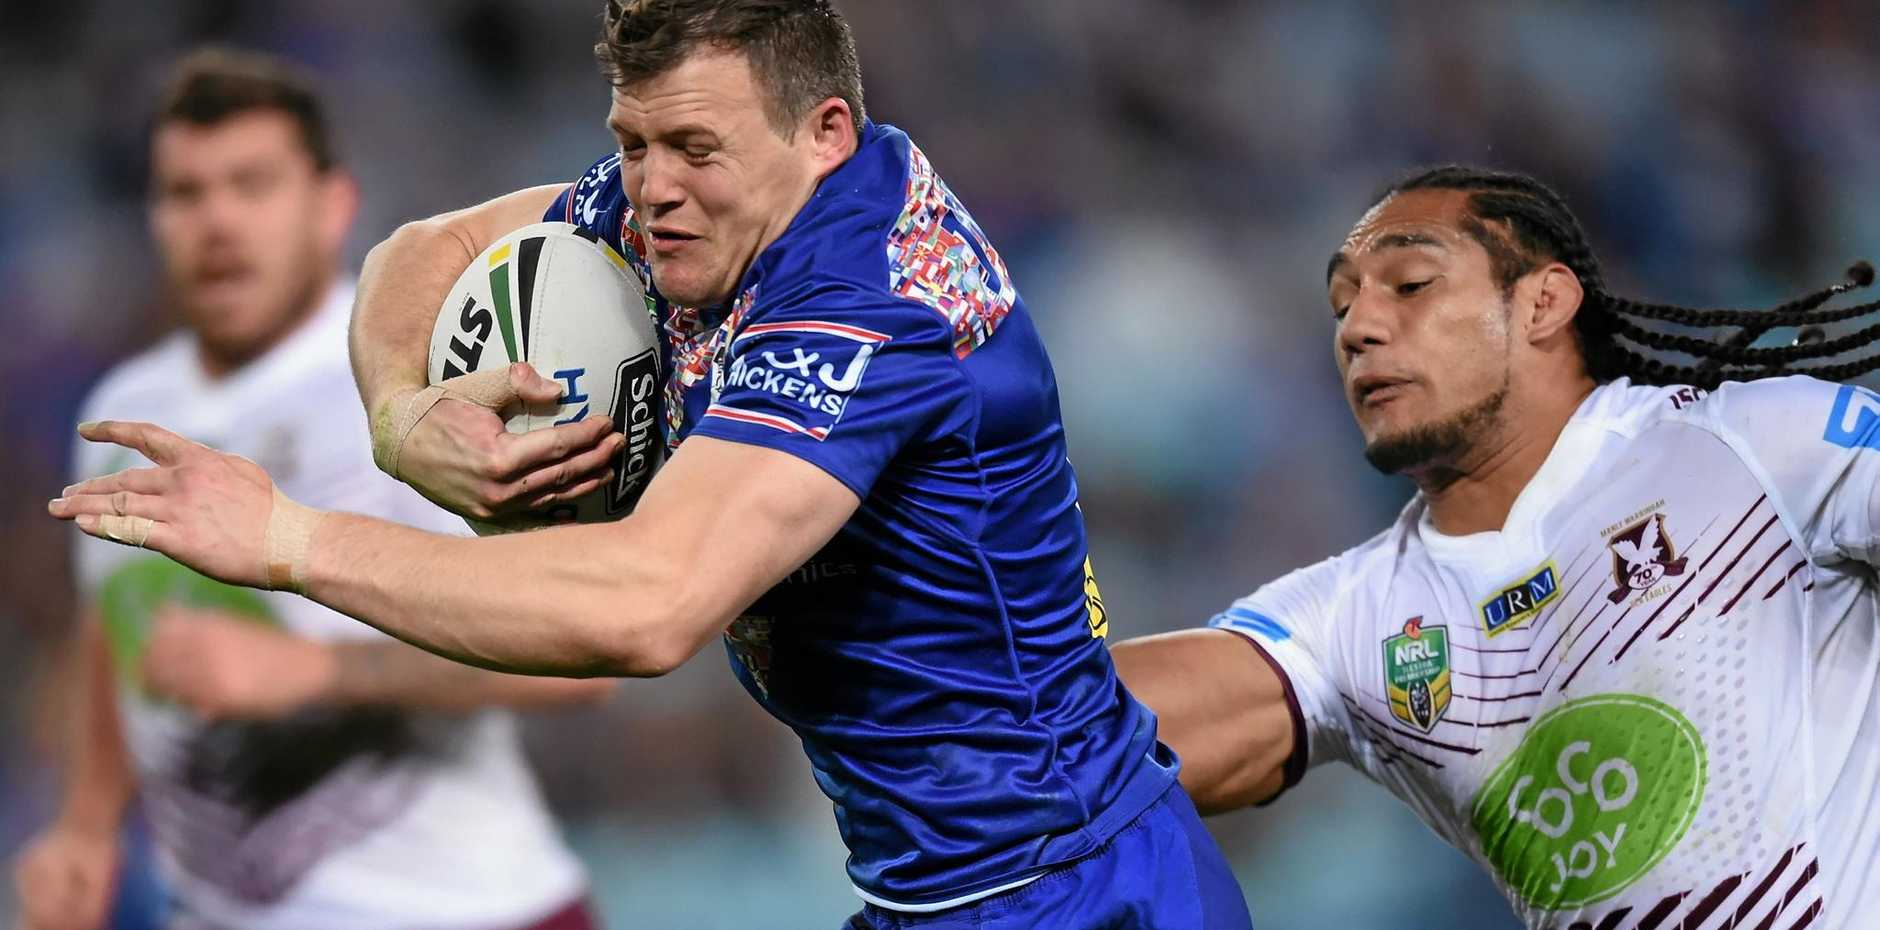 CLUB FIRST: Brett Morris will leave a decision on his participation in the Four Nations up to his Bulldogs coach Des Hasler.